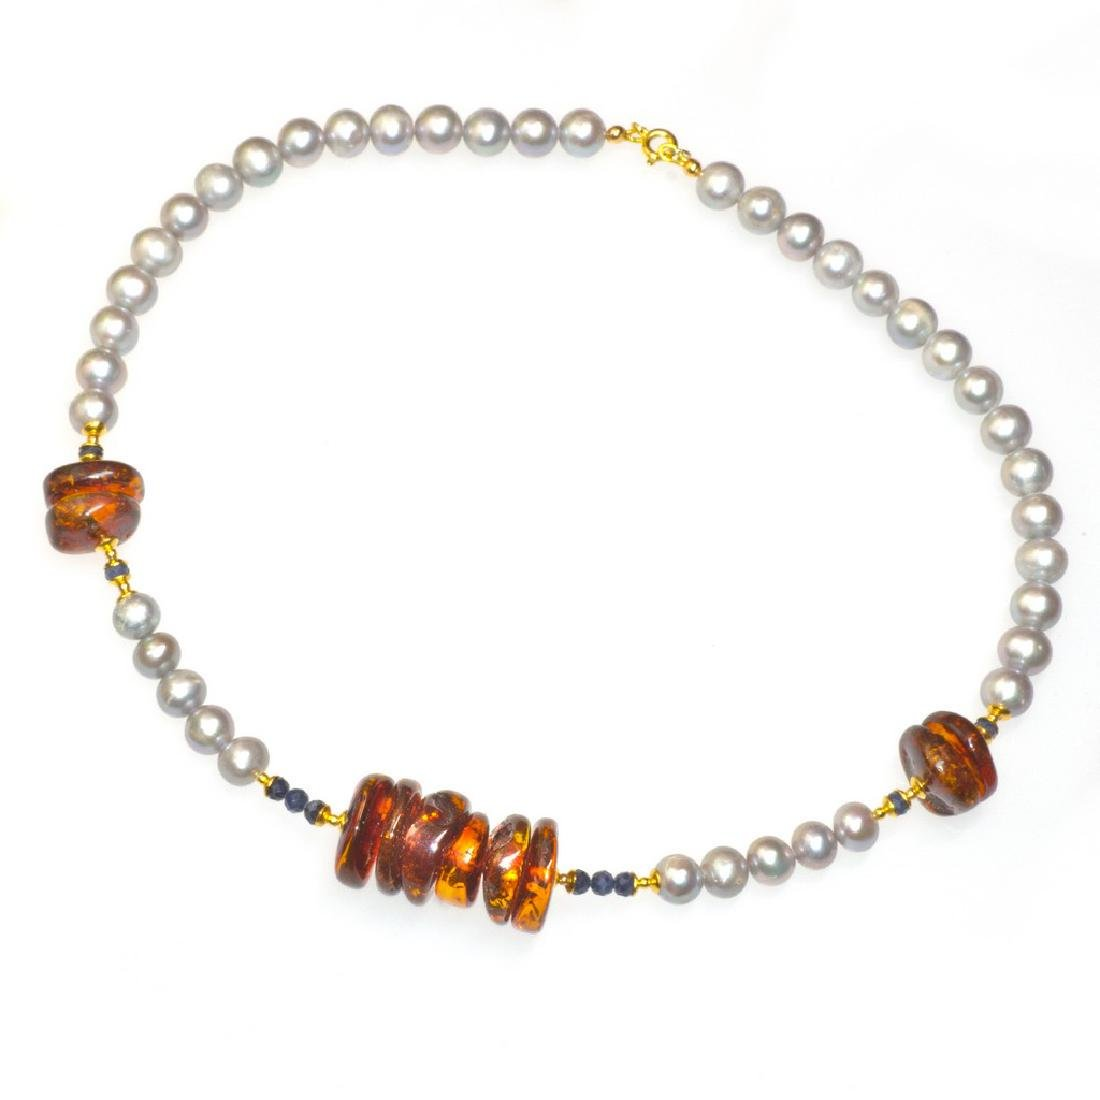 Royal Silver Pearl Baltic Amber Necklace with Sapphires